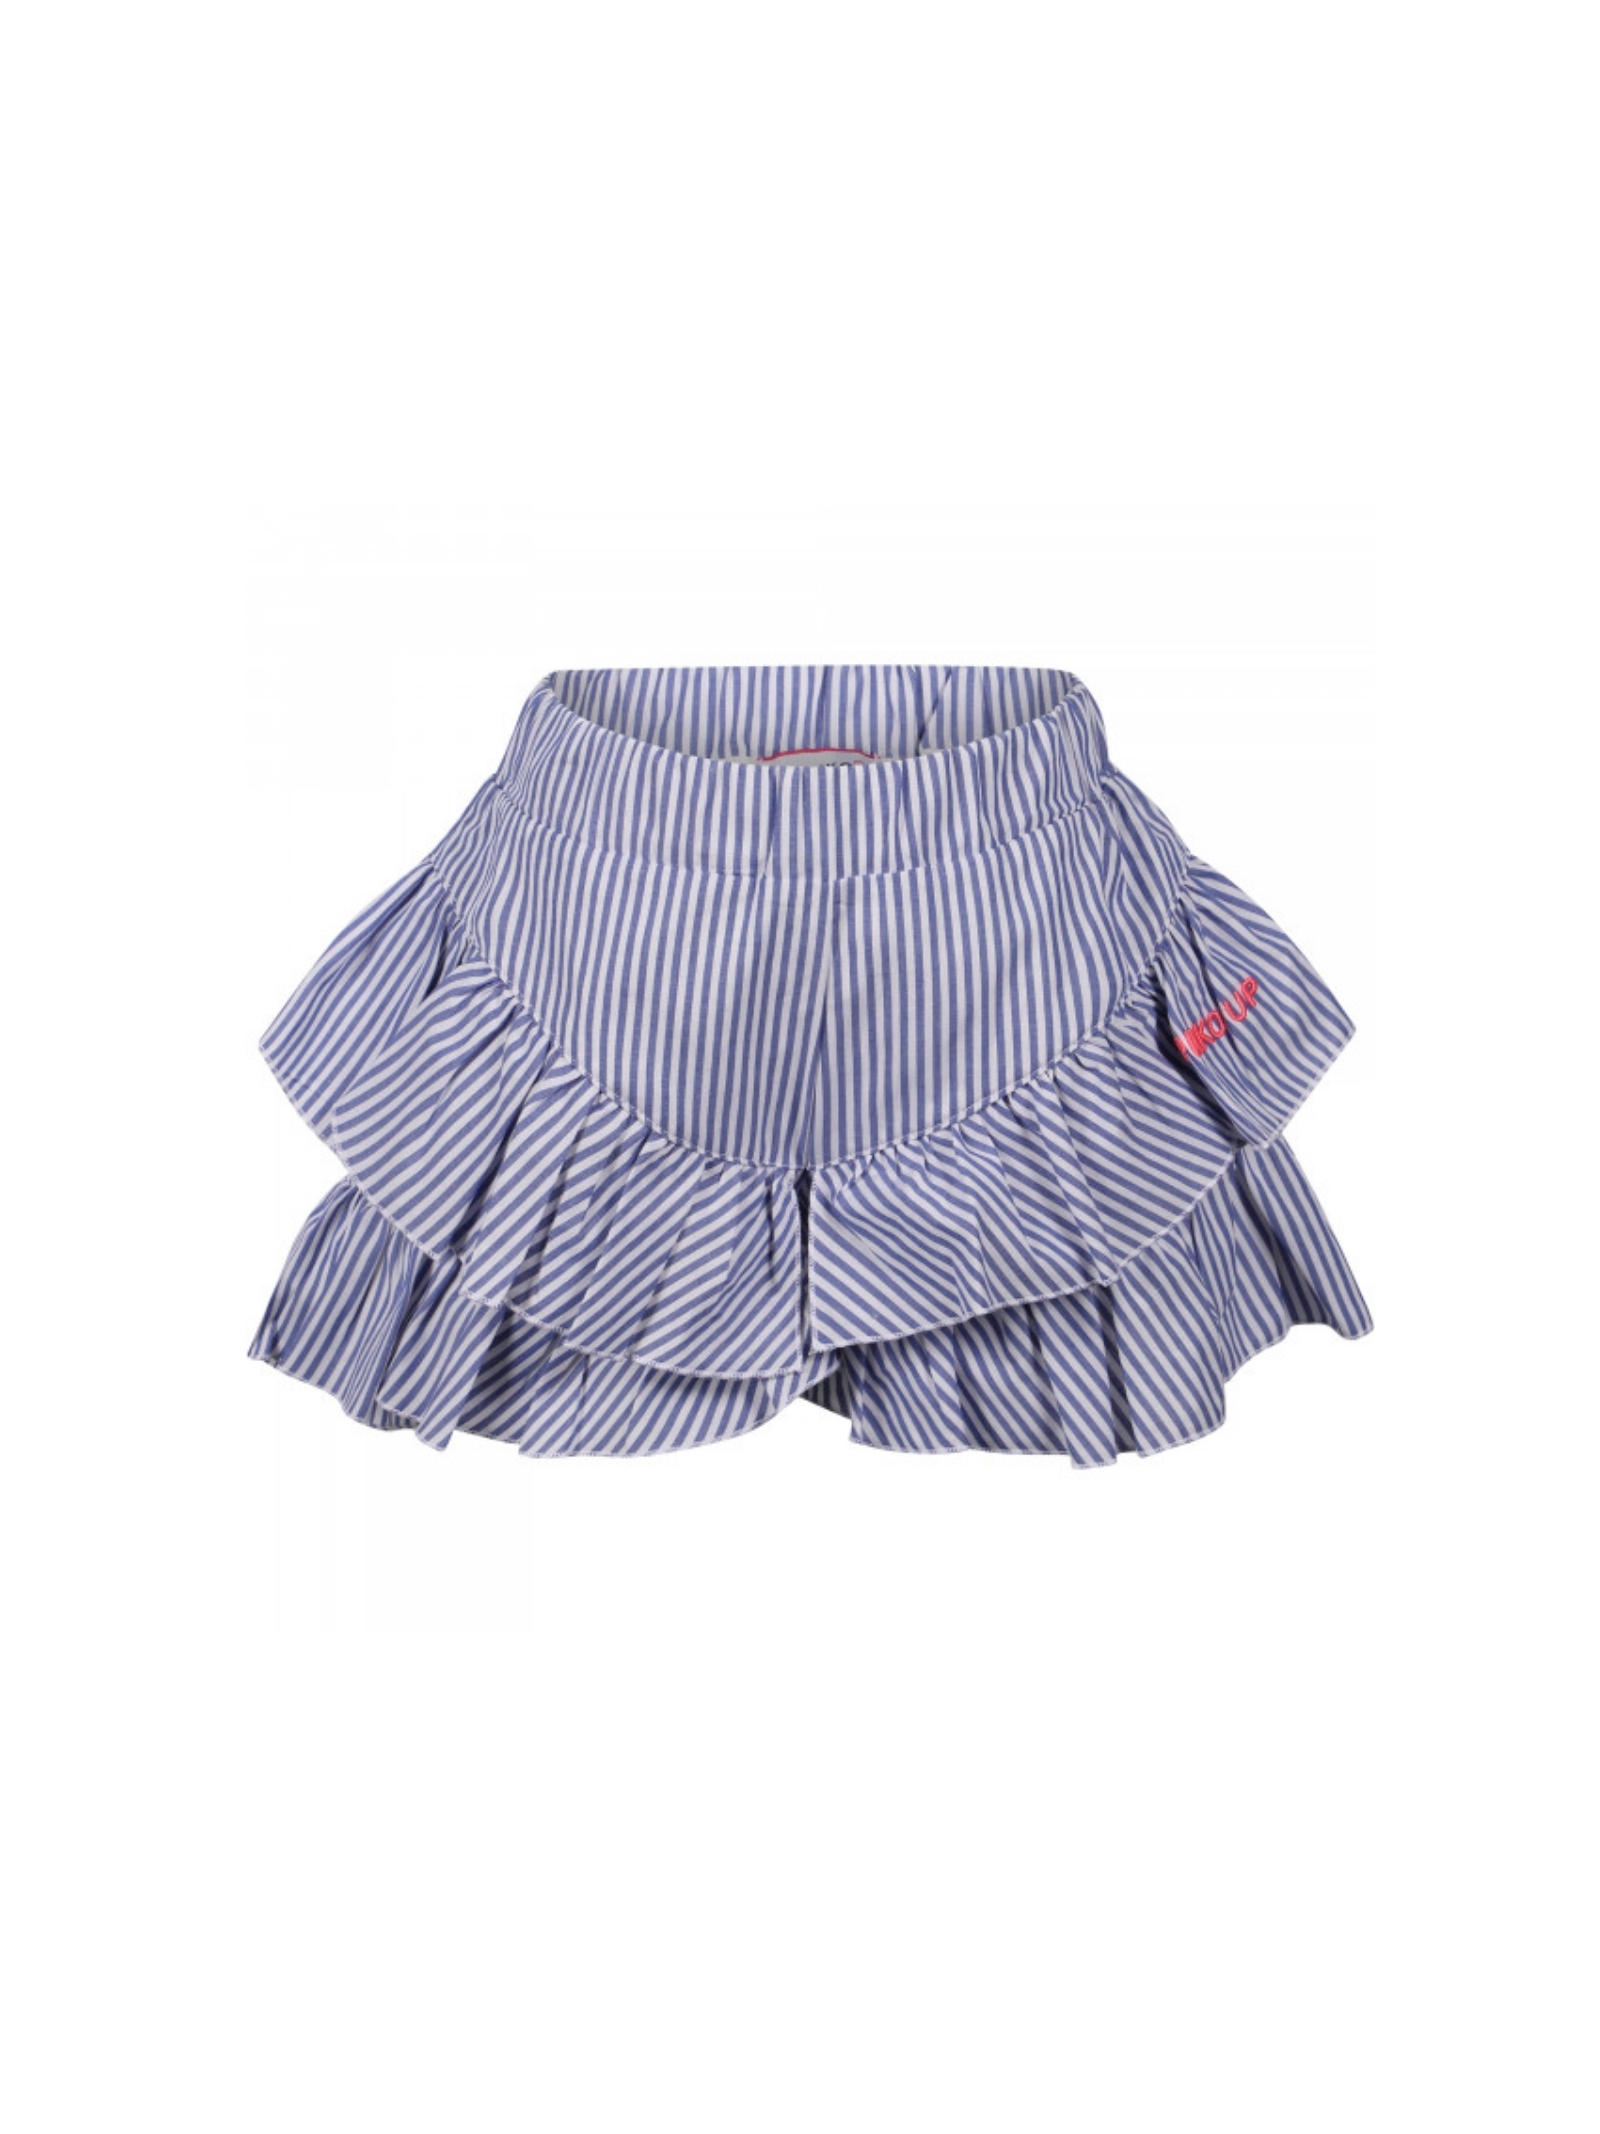 Gonna Bambina Con Balze PINKO UP | Shorts | 027824200